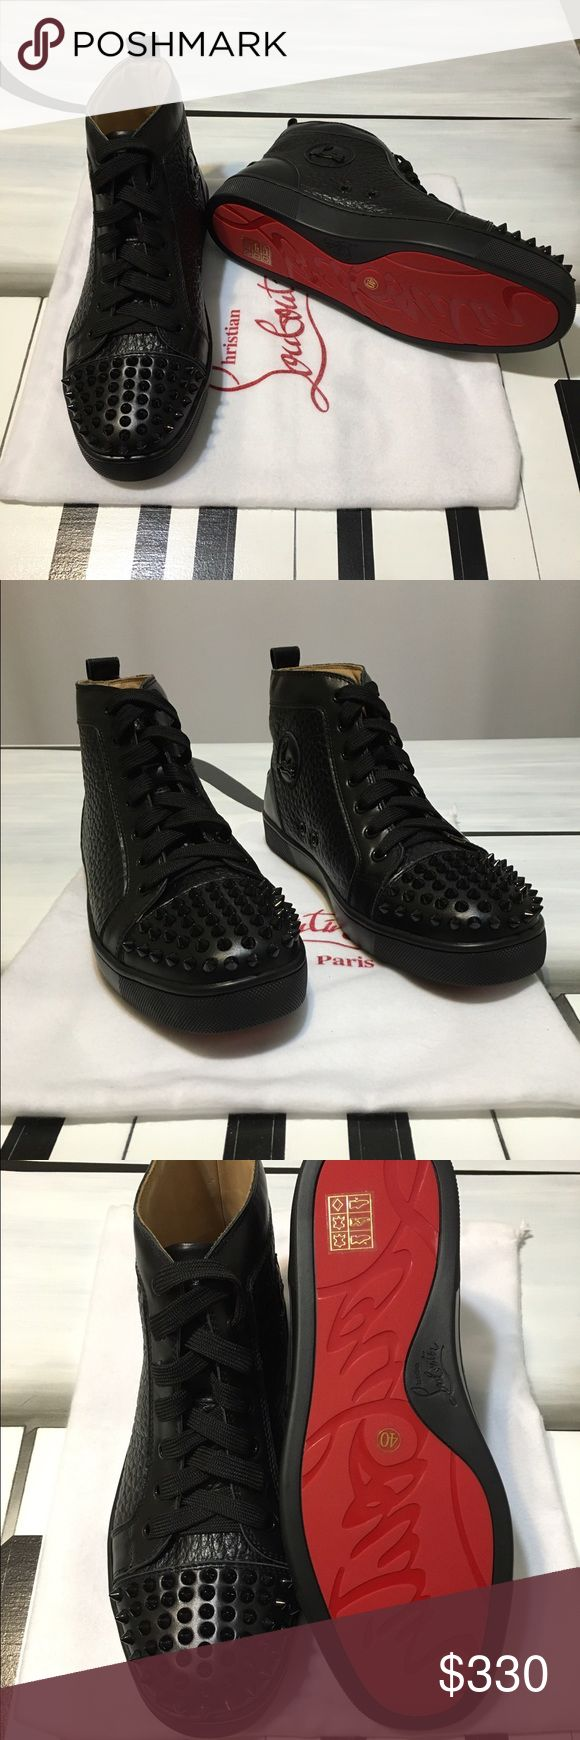 *SOLD* Louboutin Studded Sneakers Louboutin High Top Studded Sneakers. Come with box and dust bag. Christian Louboutin Shoes Sneakers